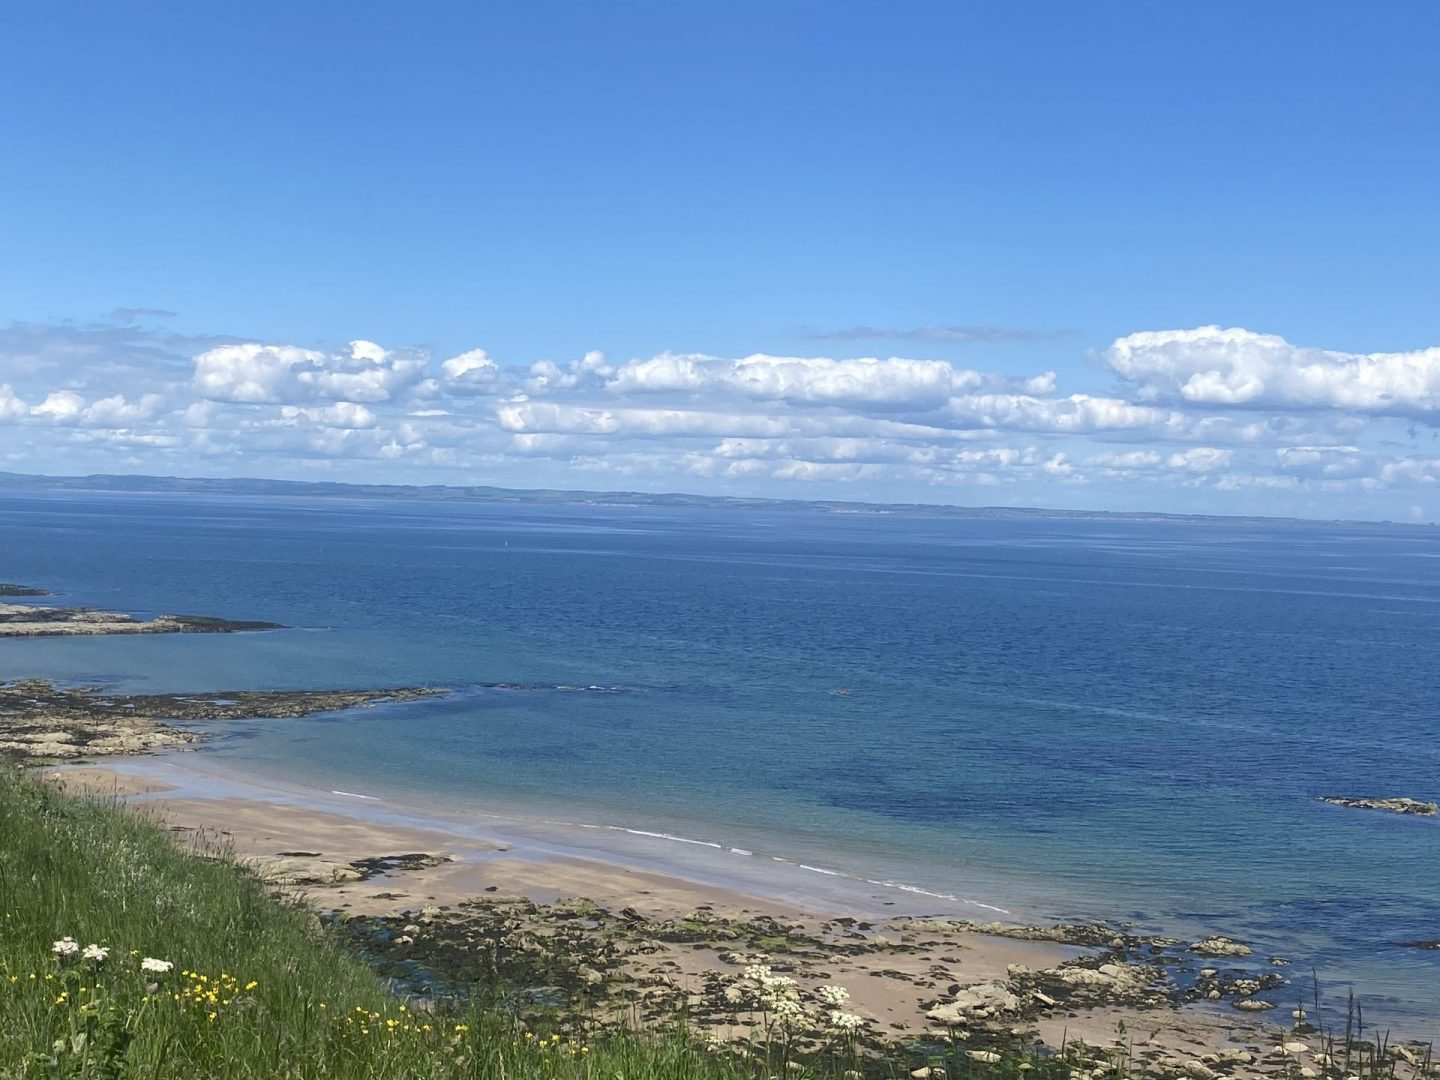 Avoiding Riptides at Canty Bay, North Berwick and checking out Drift